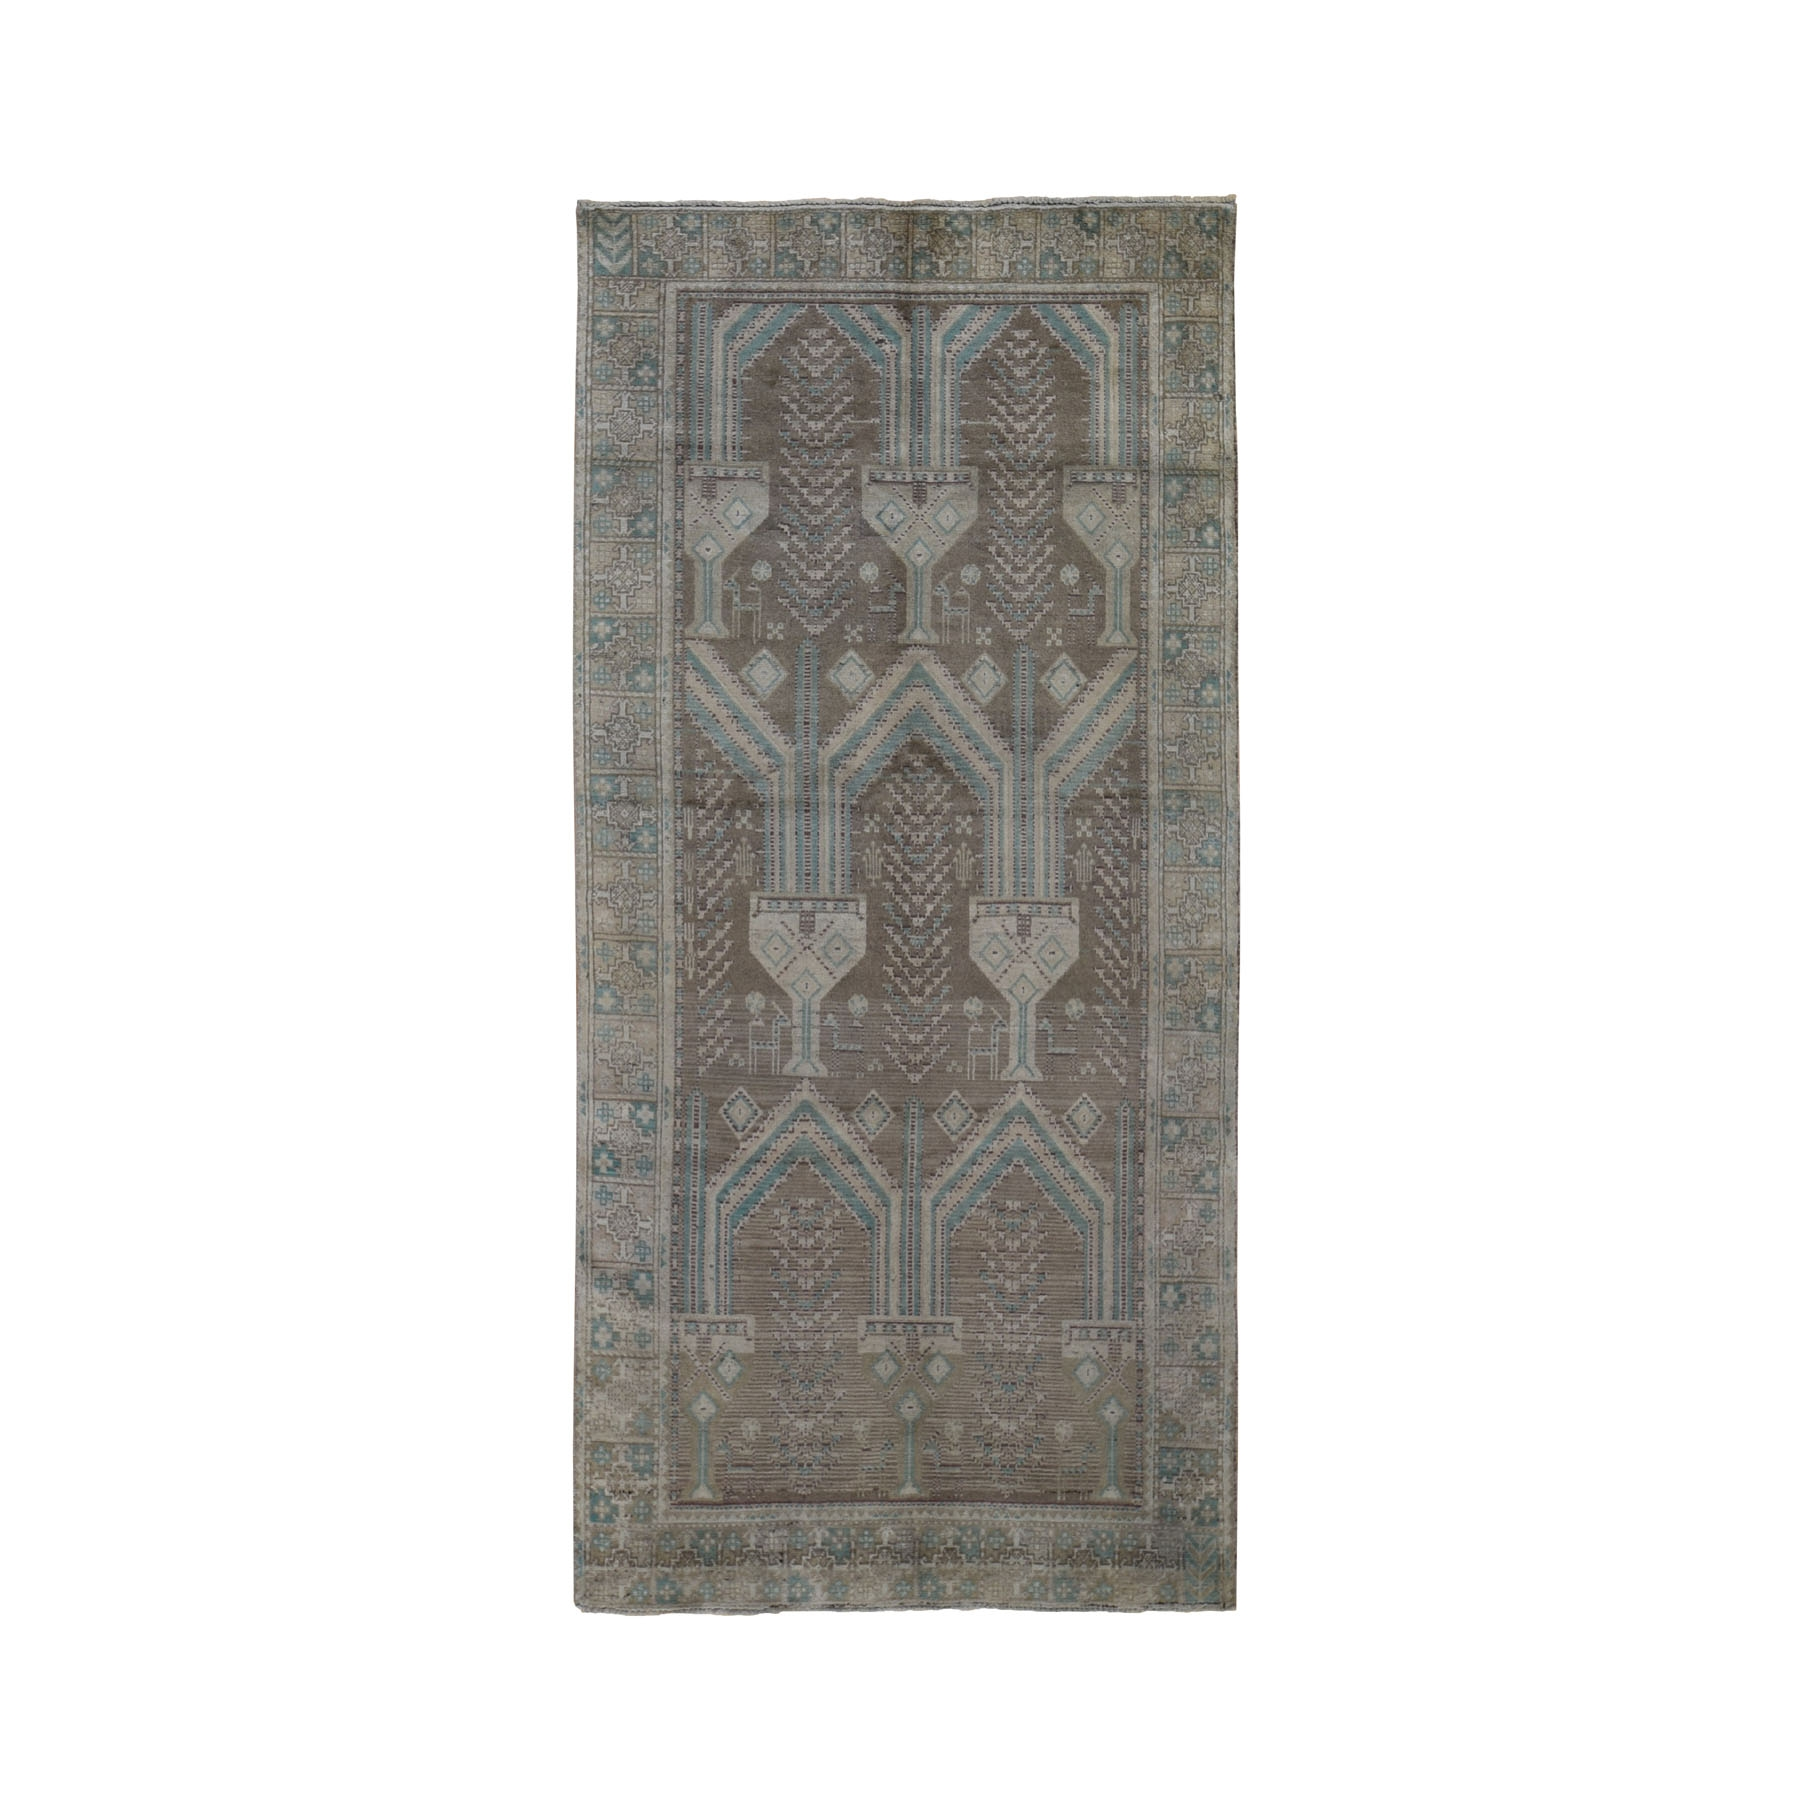 Nomadic And Village Collection Hand Knotted Grey Rug No: 199328